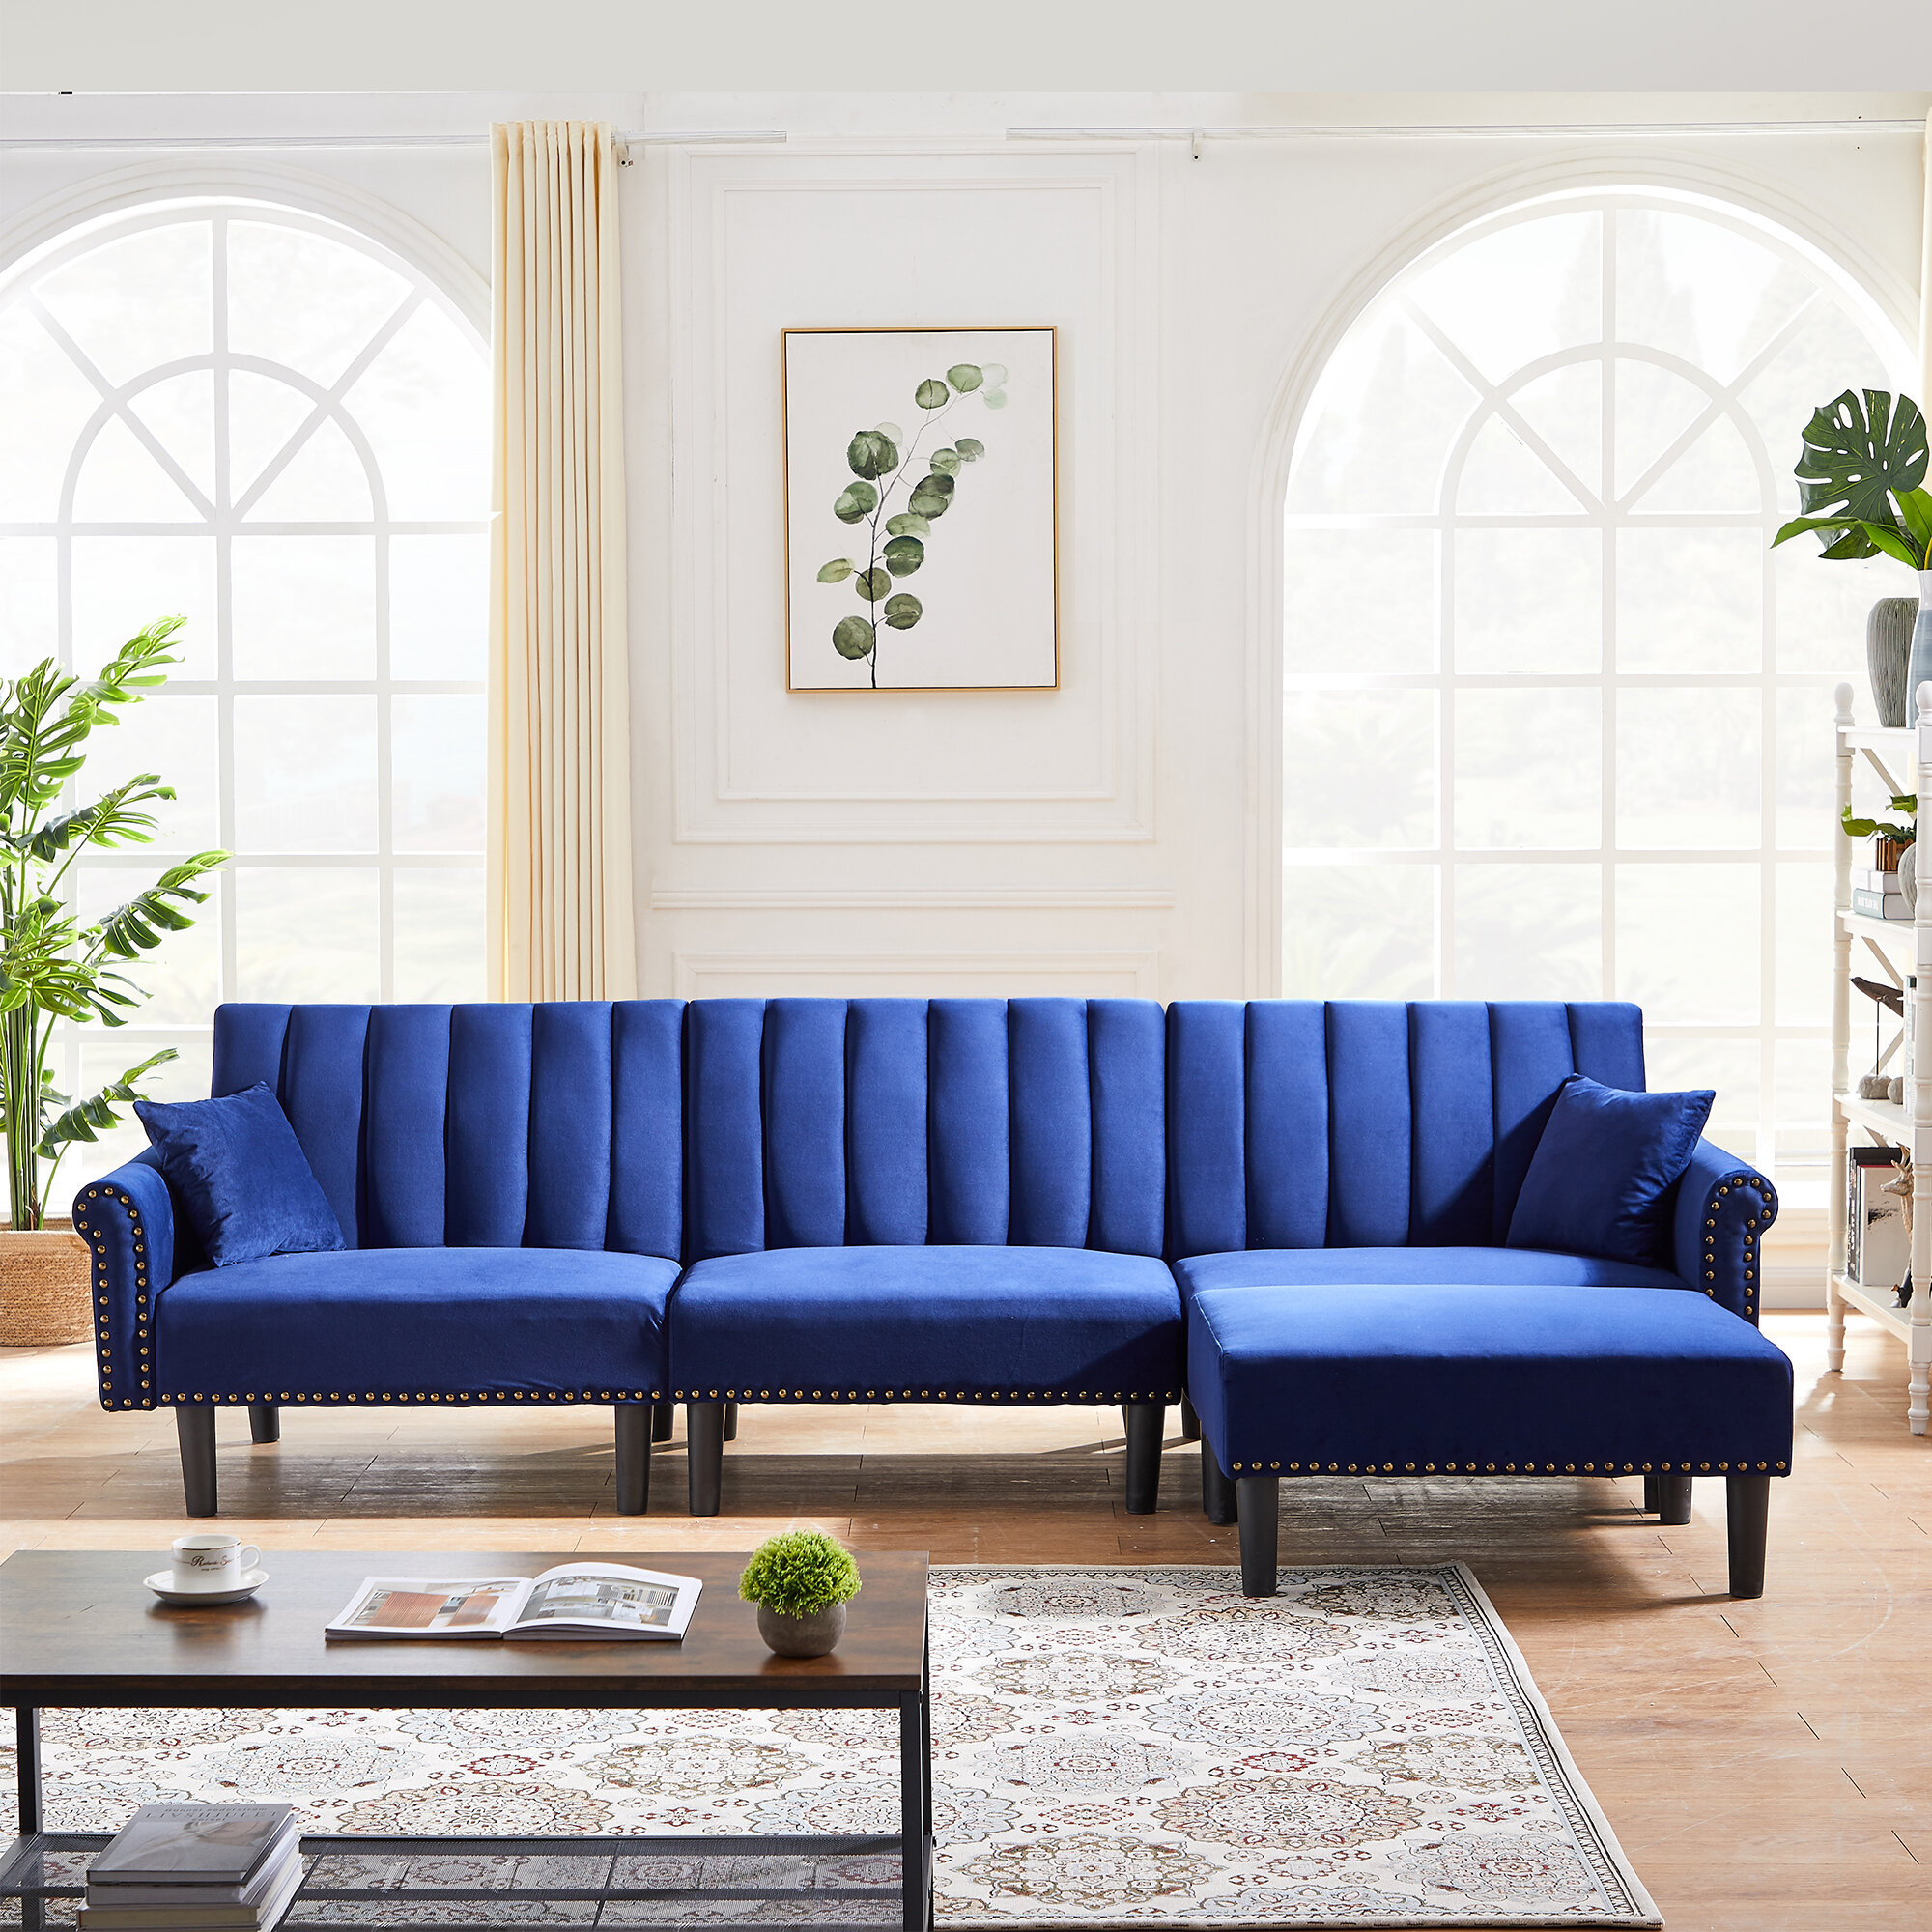 Everly Quinn Rivet Upholstered Combination Sofa With Adjustable Back Modular Chaise Sectional Sofa Velvet Upholstered Sofa Bed Double Deck Chair With 2 Throw Pillows Modern Contemporary Style Wayfair Ca